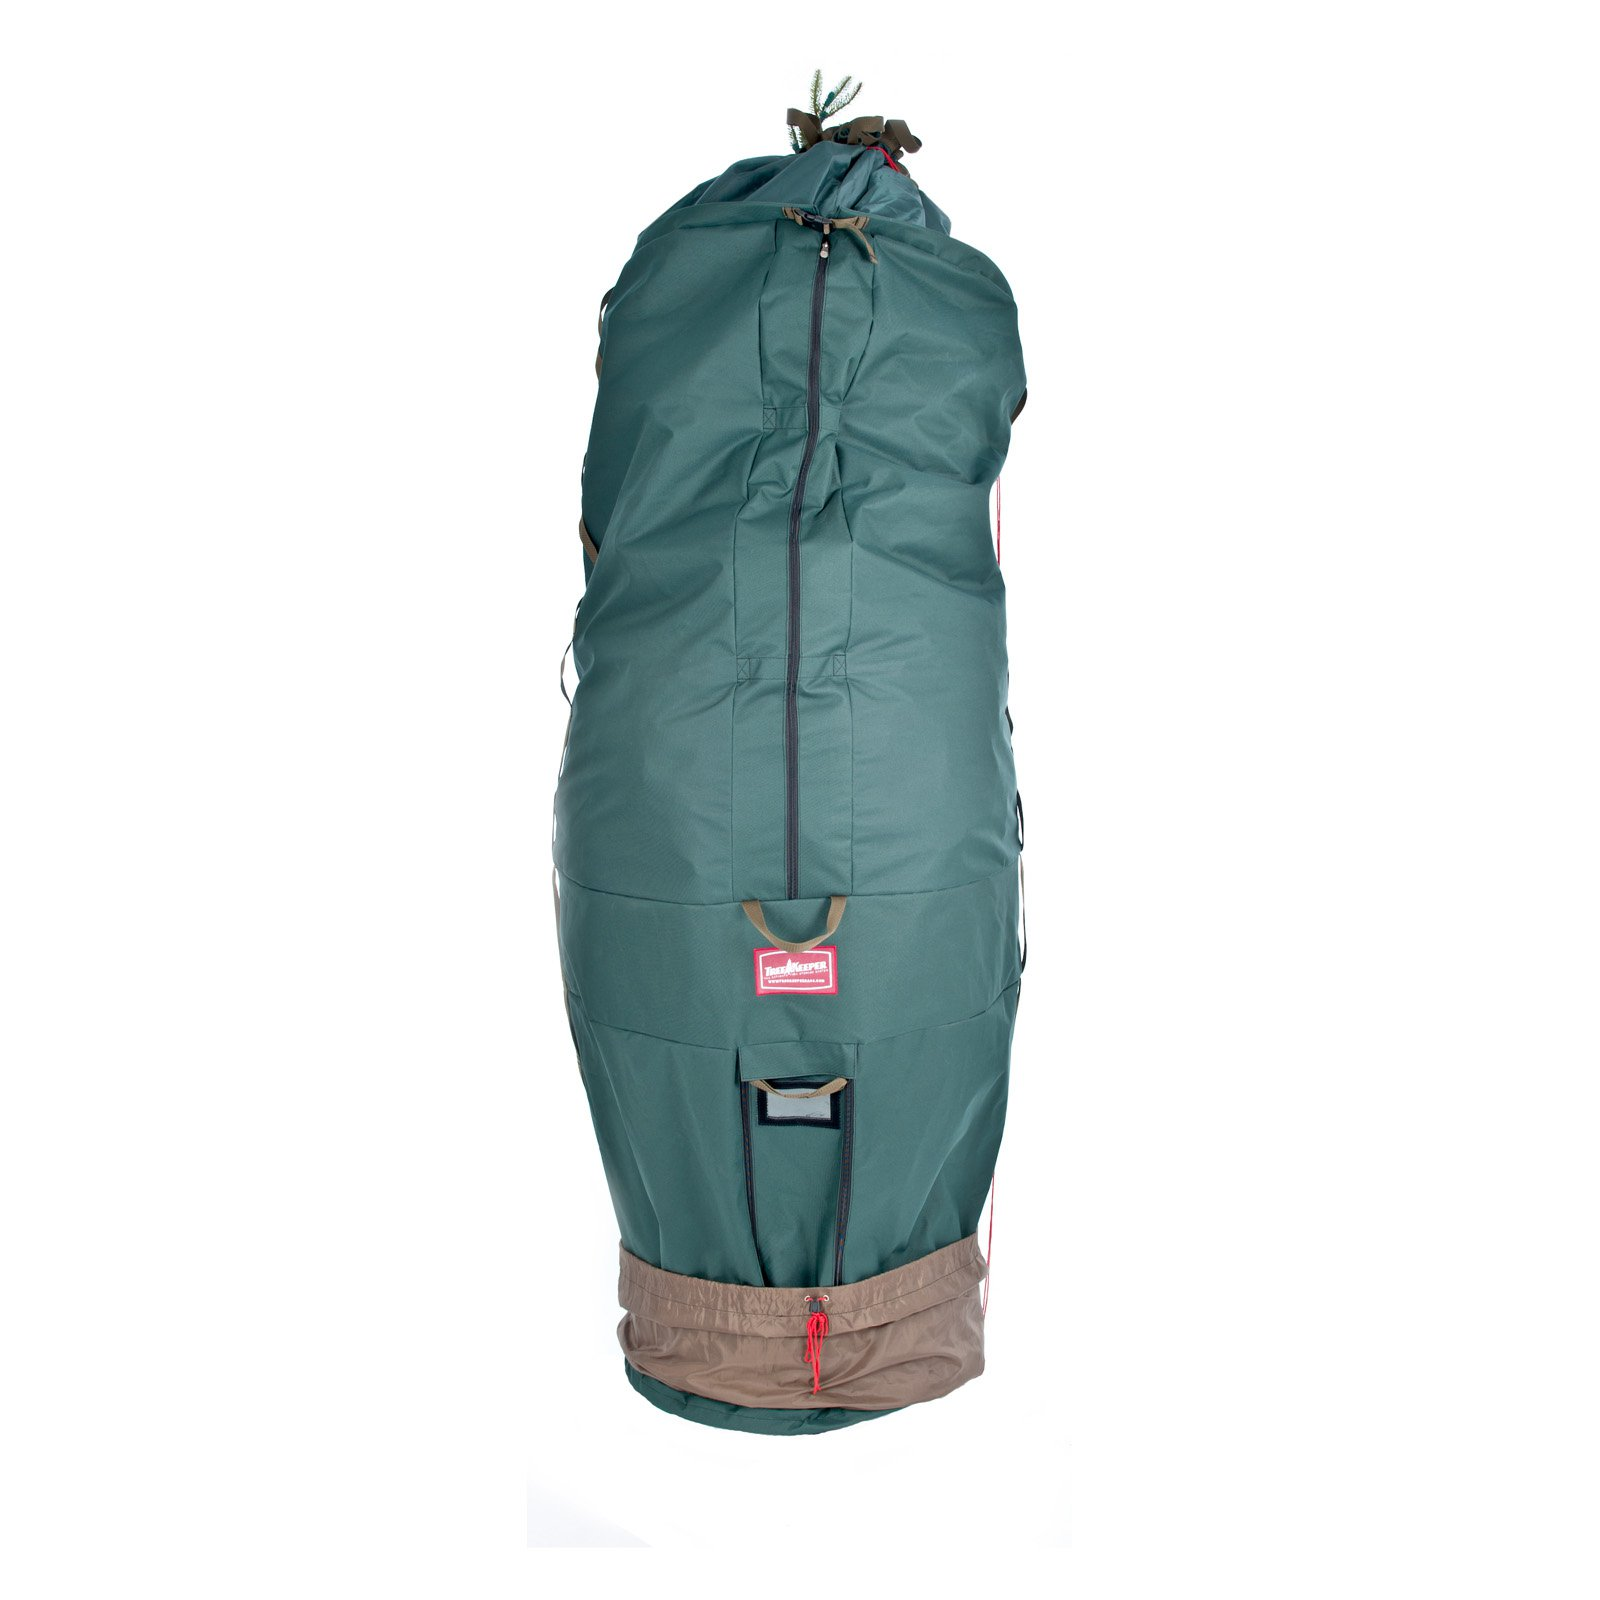 5f865ebc9d TreeKeeper Large Girth Tree Bag - Walmart.com